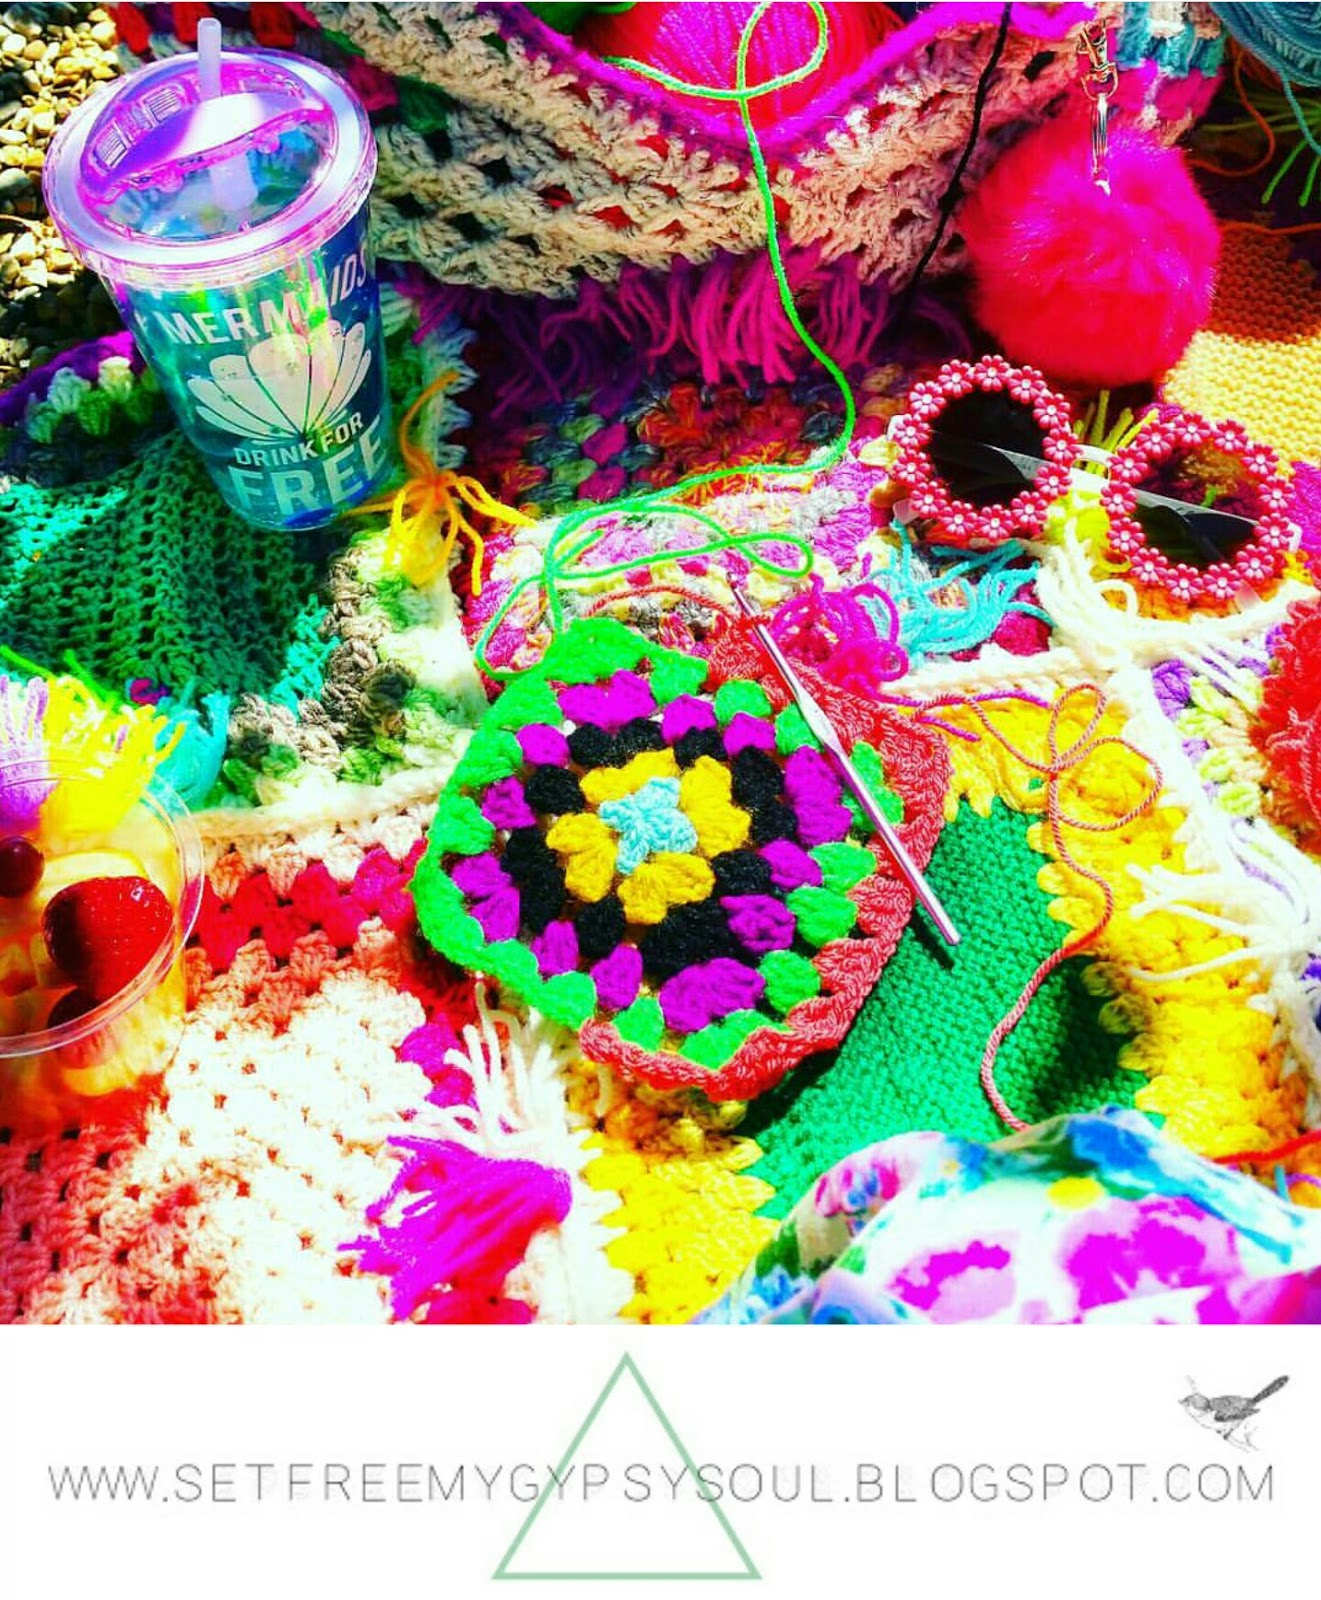 granny squares crochet outside urban boho bright color colorful yarn